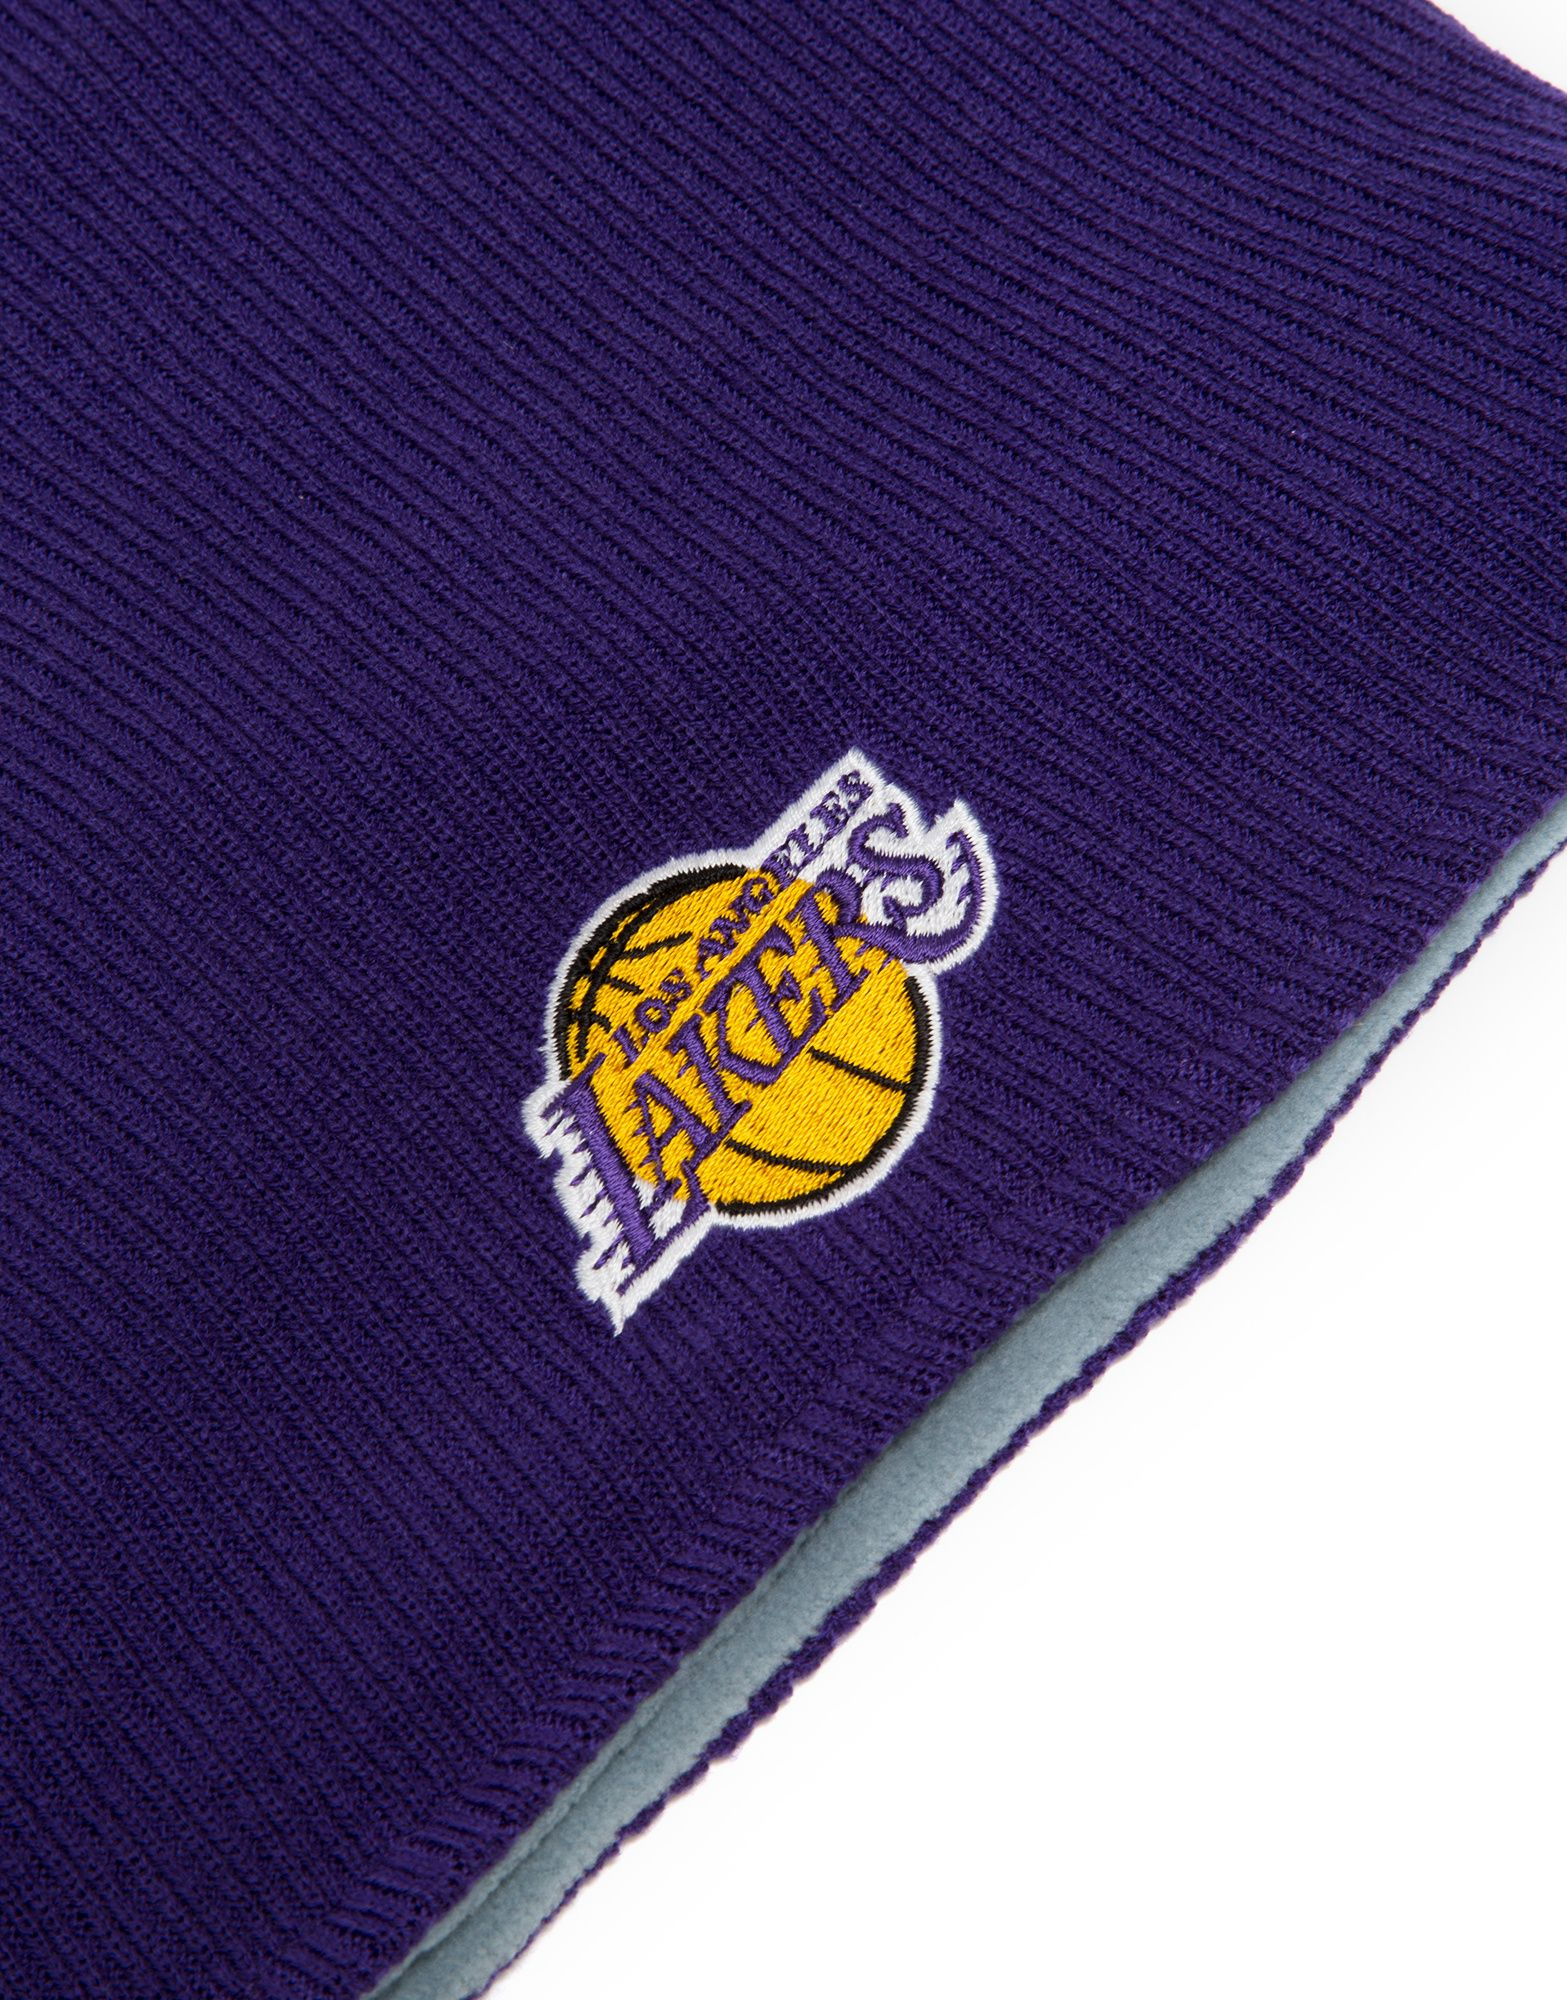 Mitchell & Ness NBA Los Angeles Lakers Neck Warmer